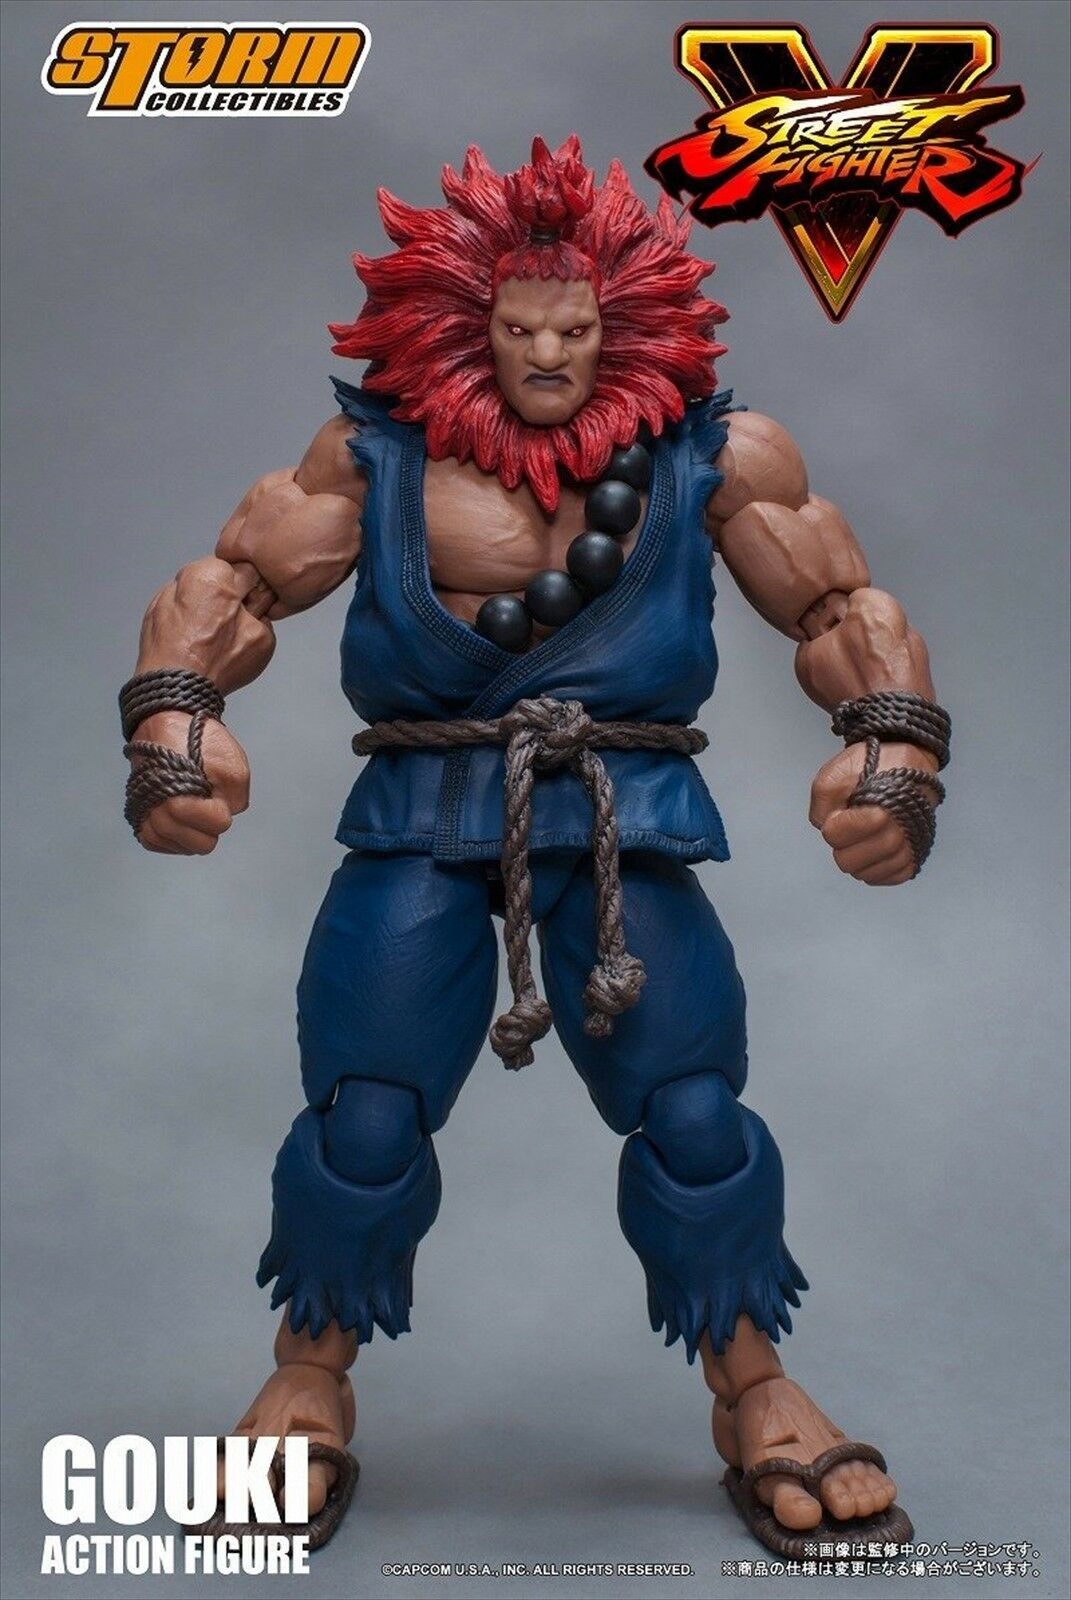 NEW Street Fighter V Akuma Gouki Action Figure Storm from Collectibles from Storm Japan 6eb4c5